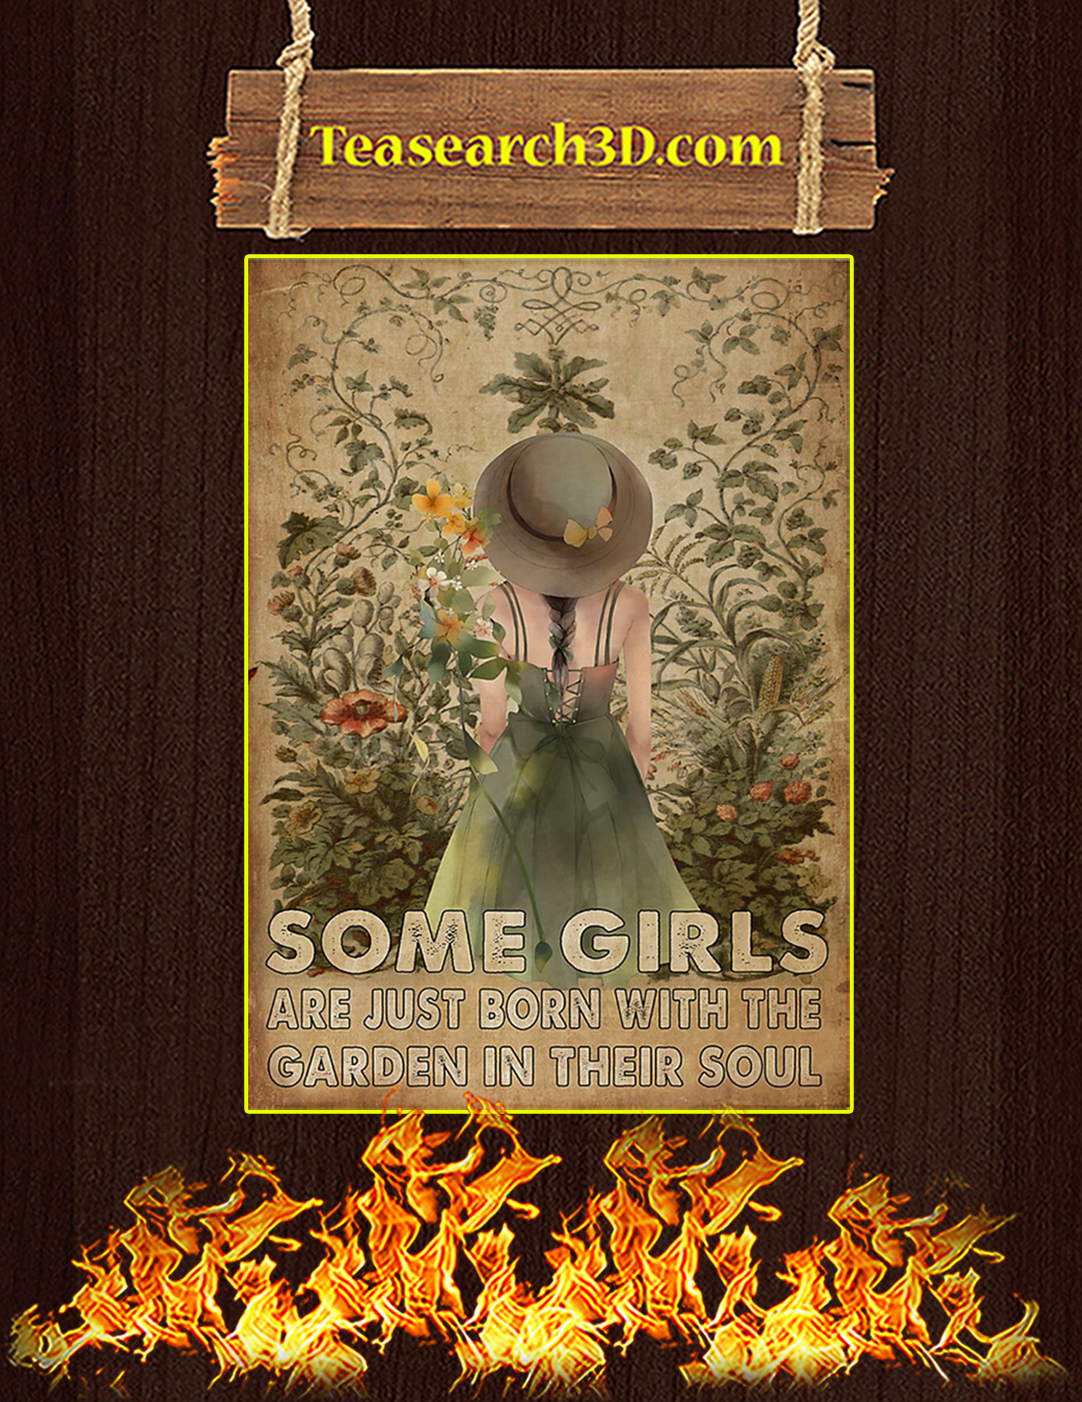 Some girls are just born with garden in their soul poster A2